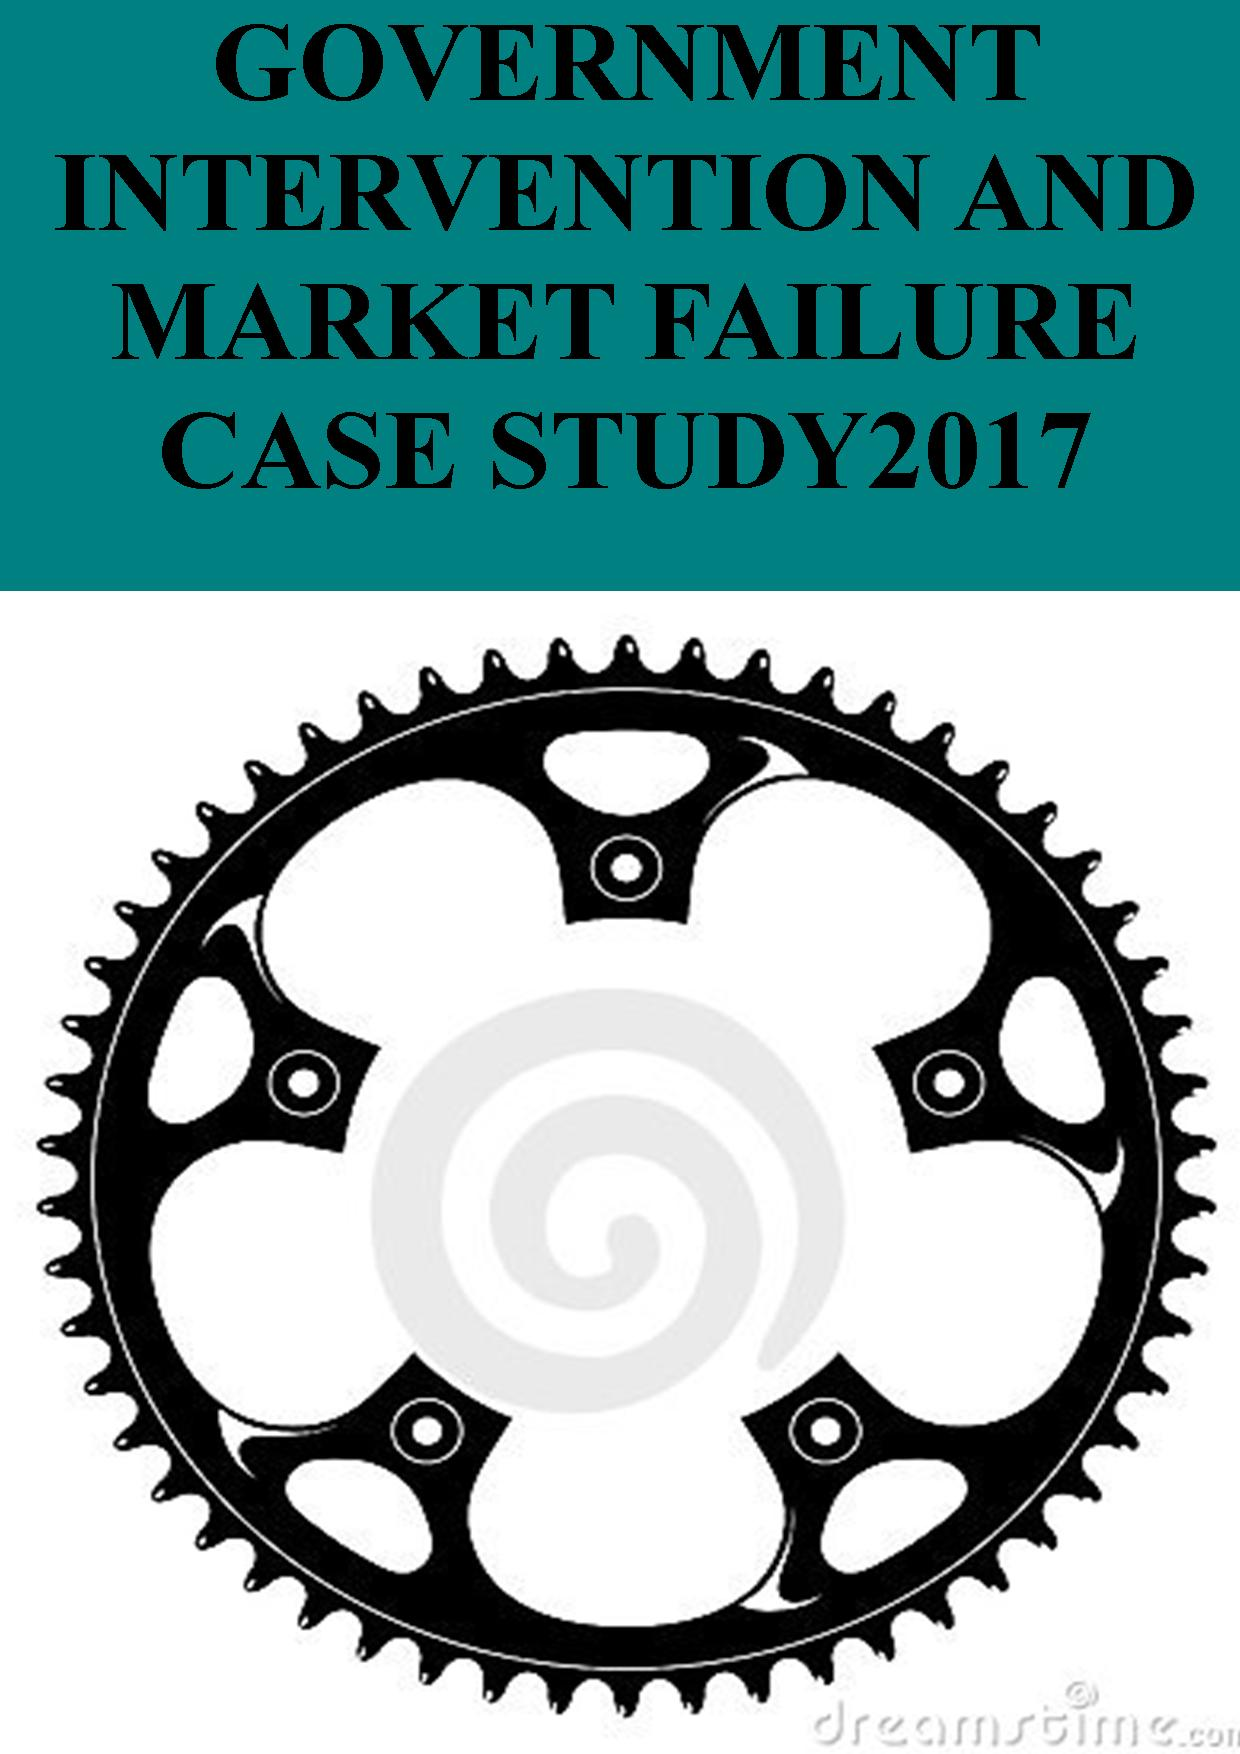 Government Intervention and Market Failure Case Study 2017